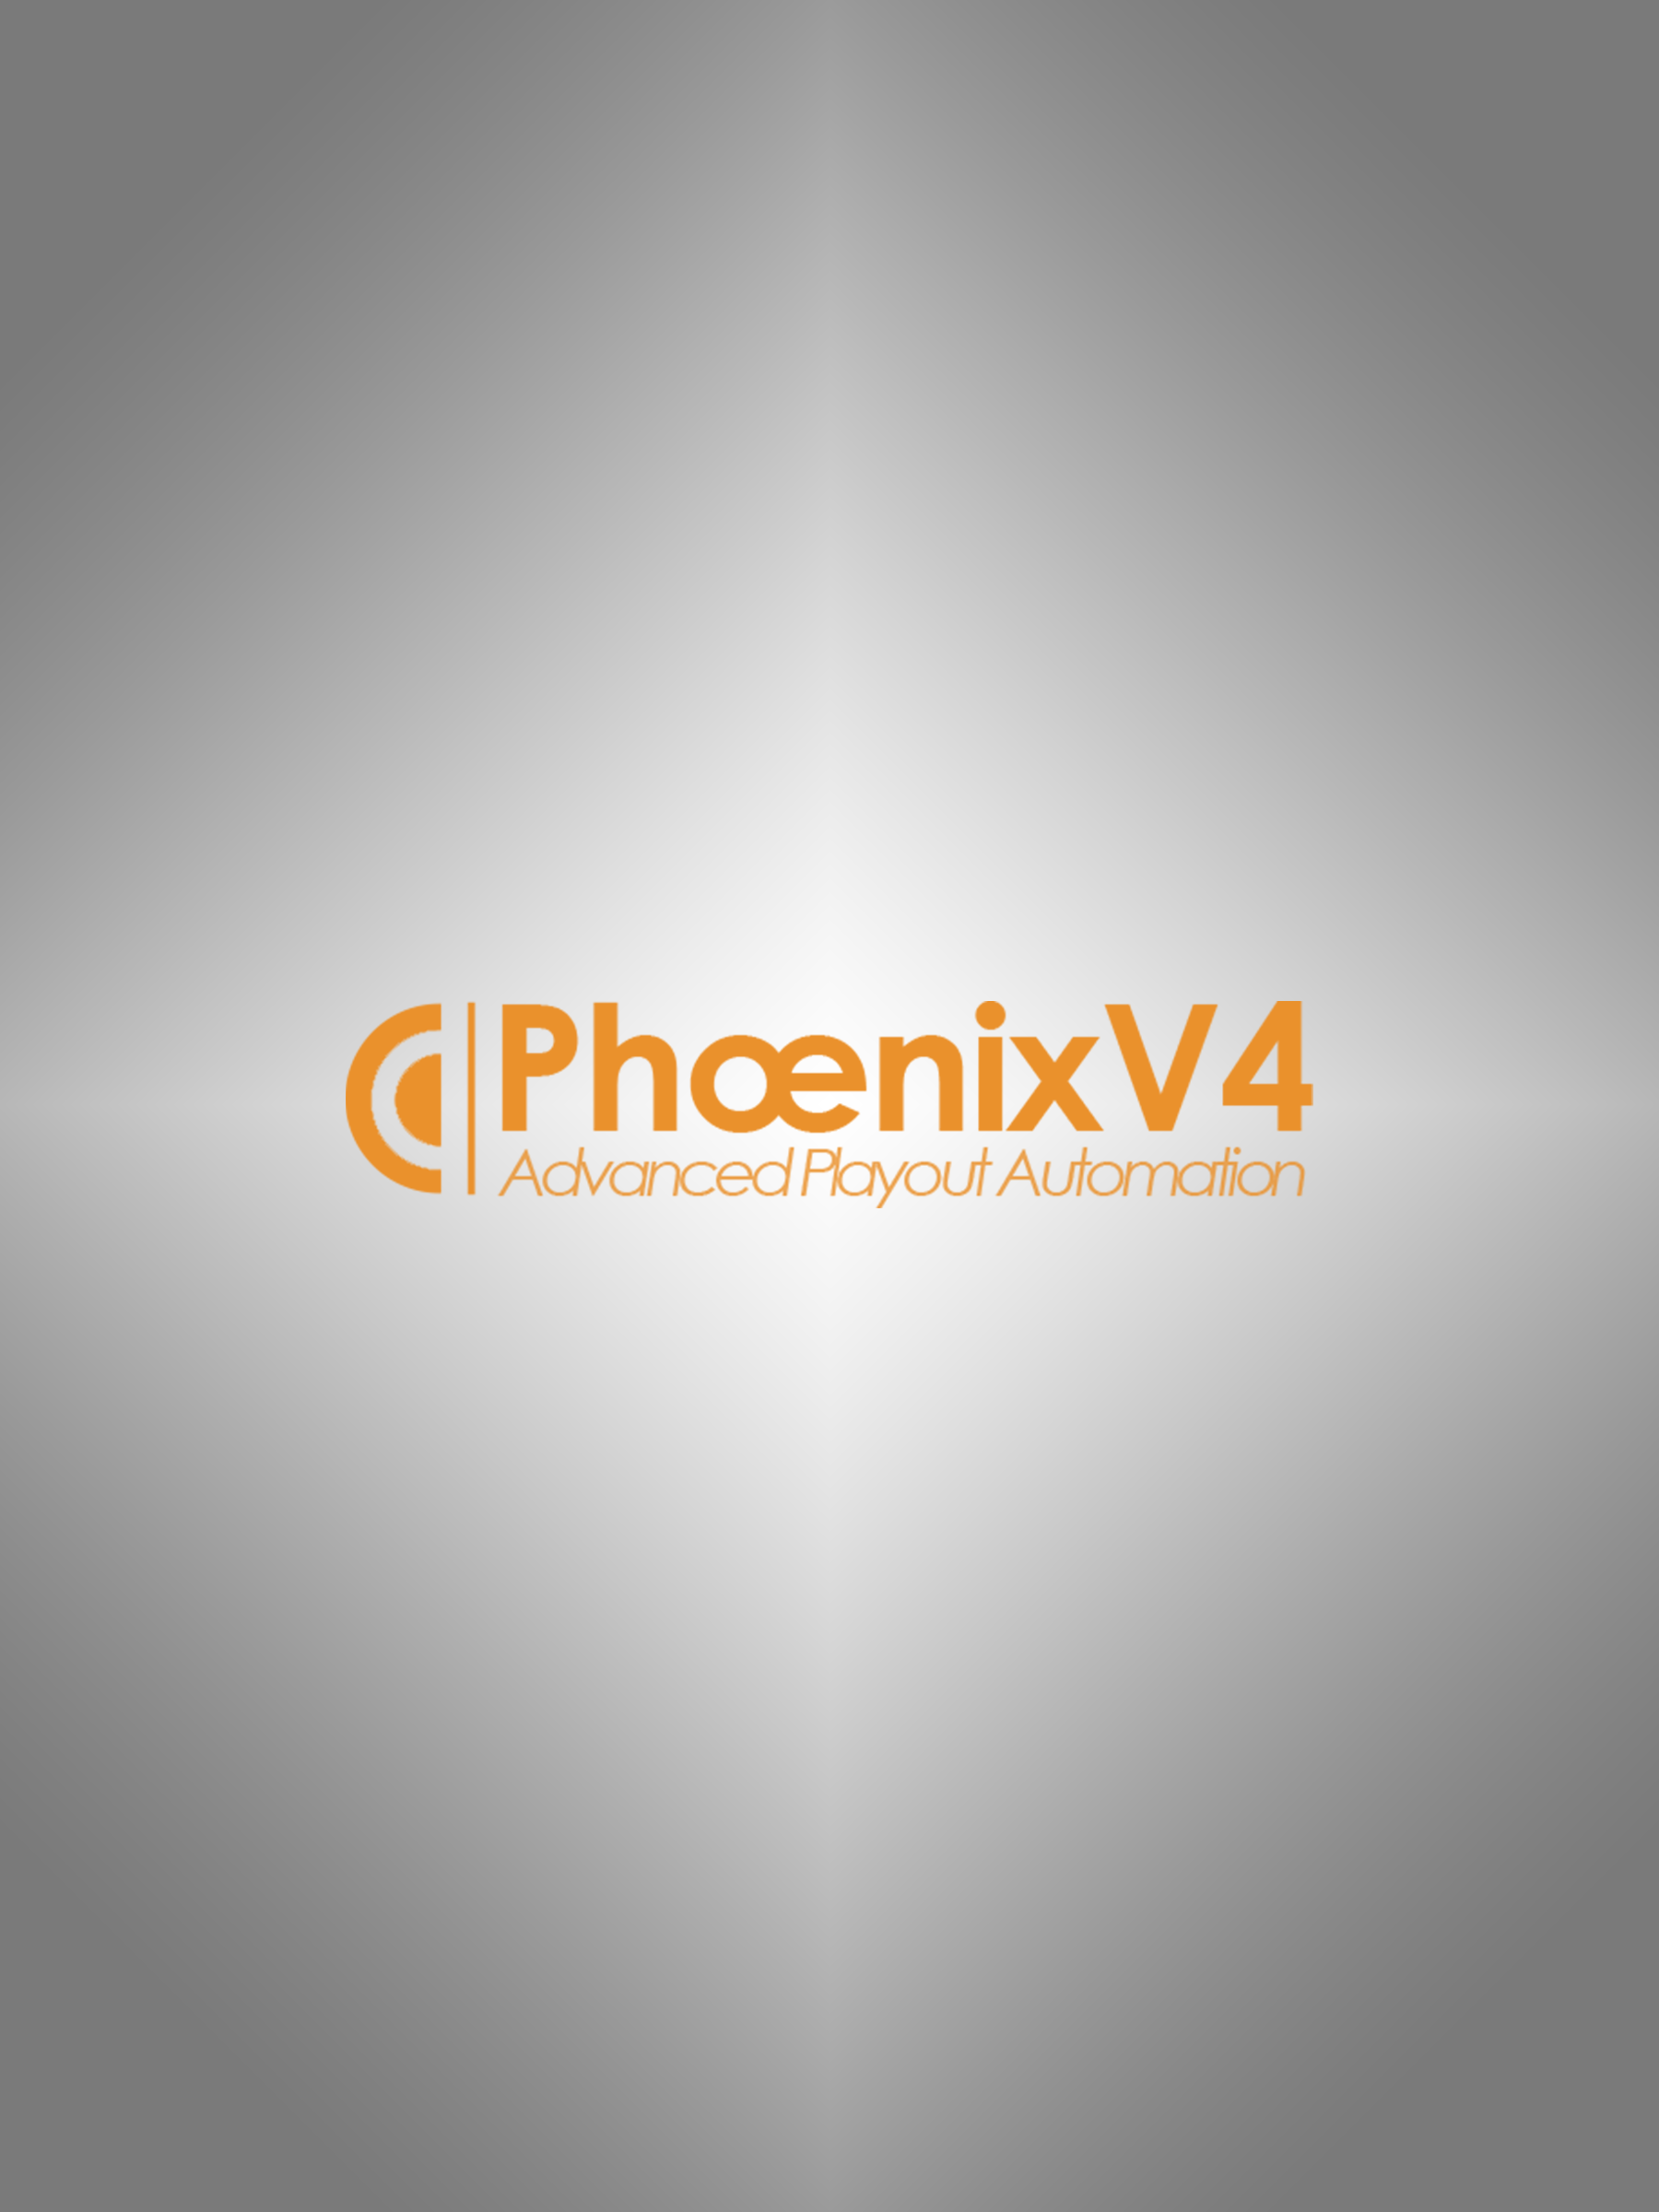 PHOENIX V4 - NEW GENERATION PLAYOUT AUTOMATION